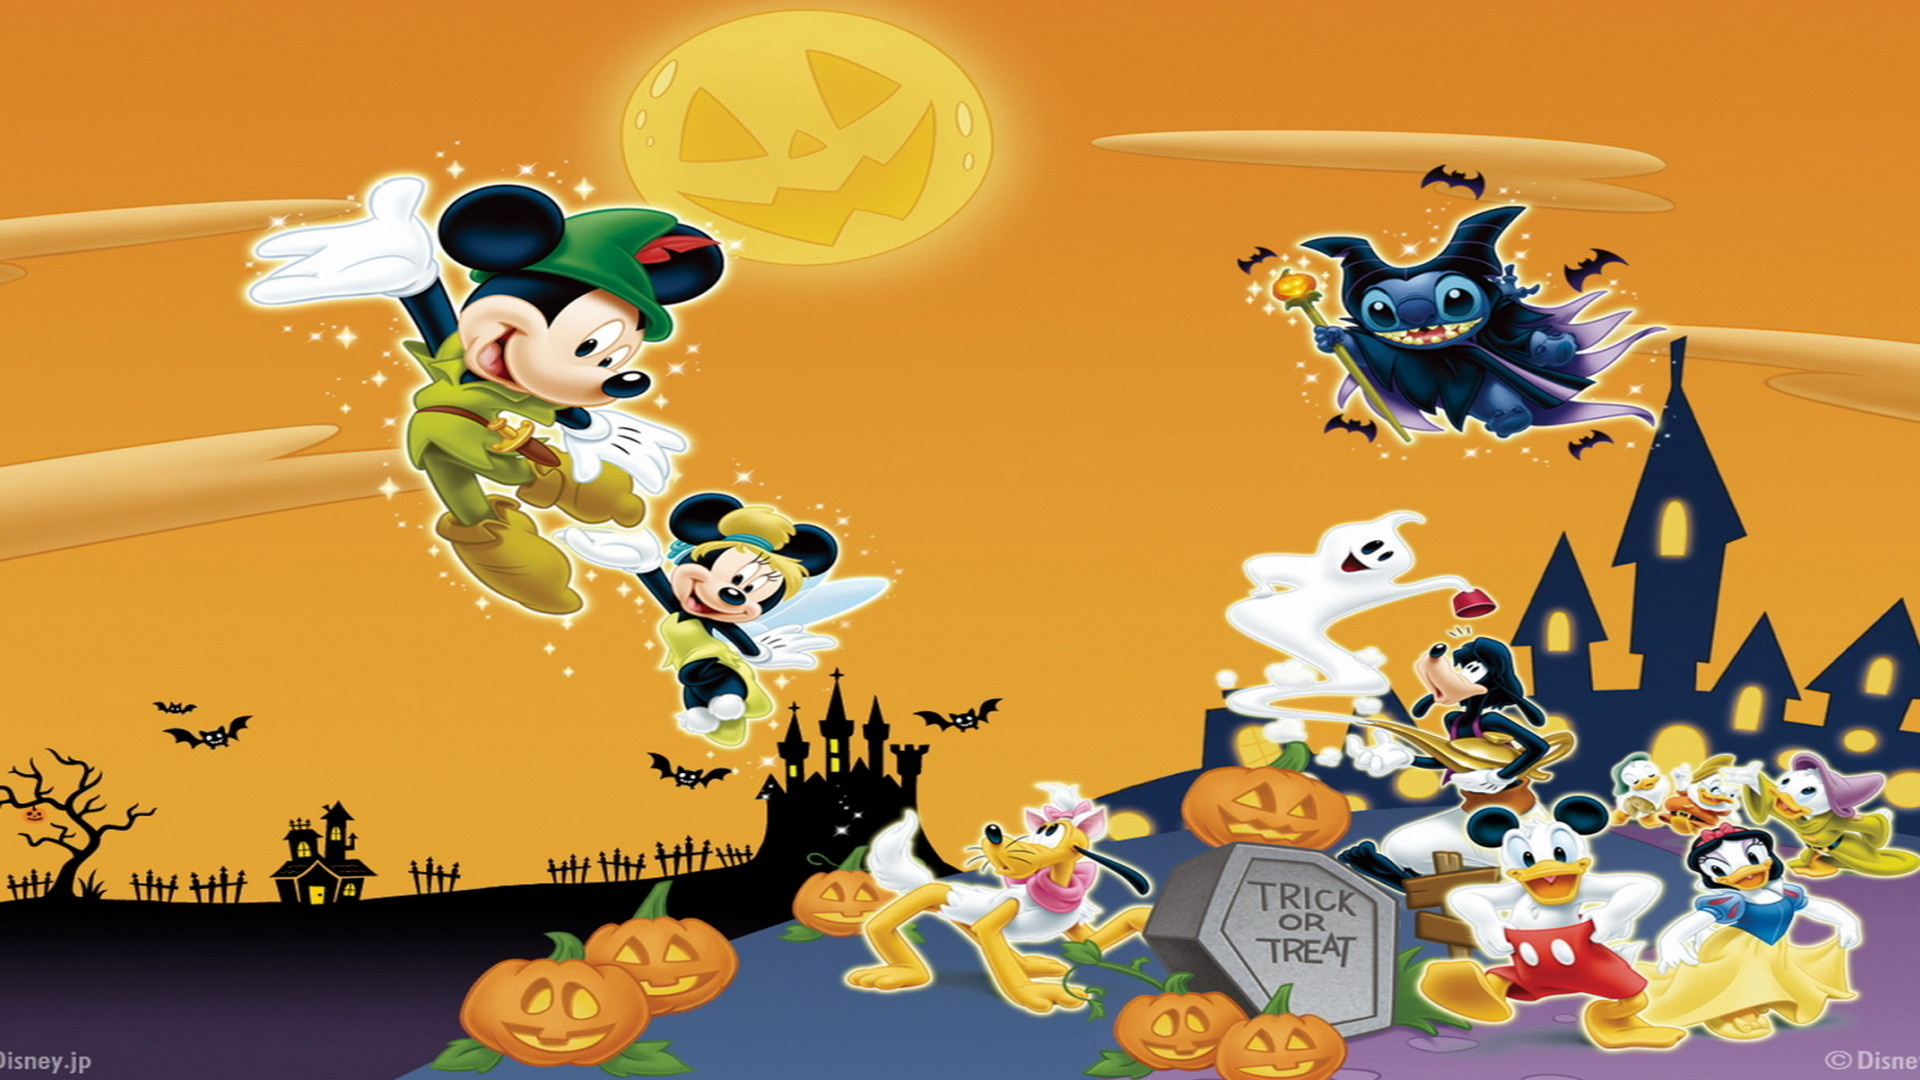 Disney Halloween Backgrounds 71 images